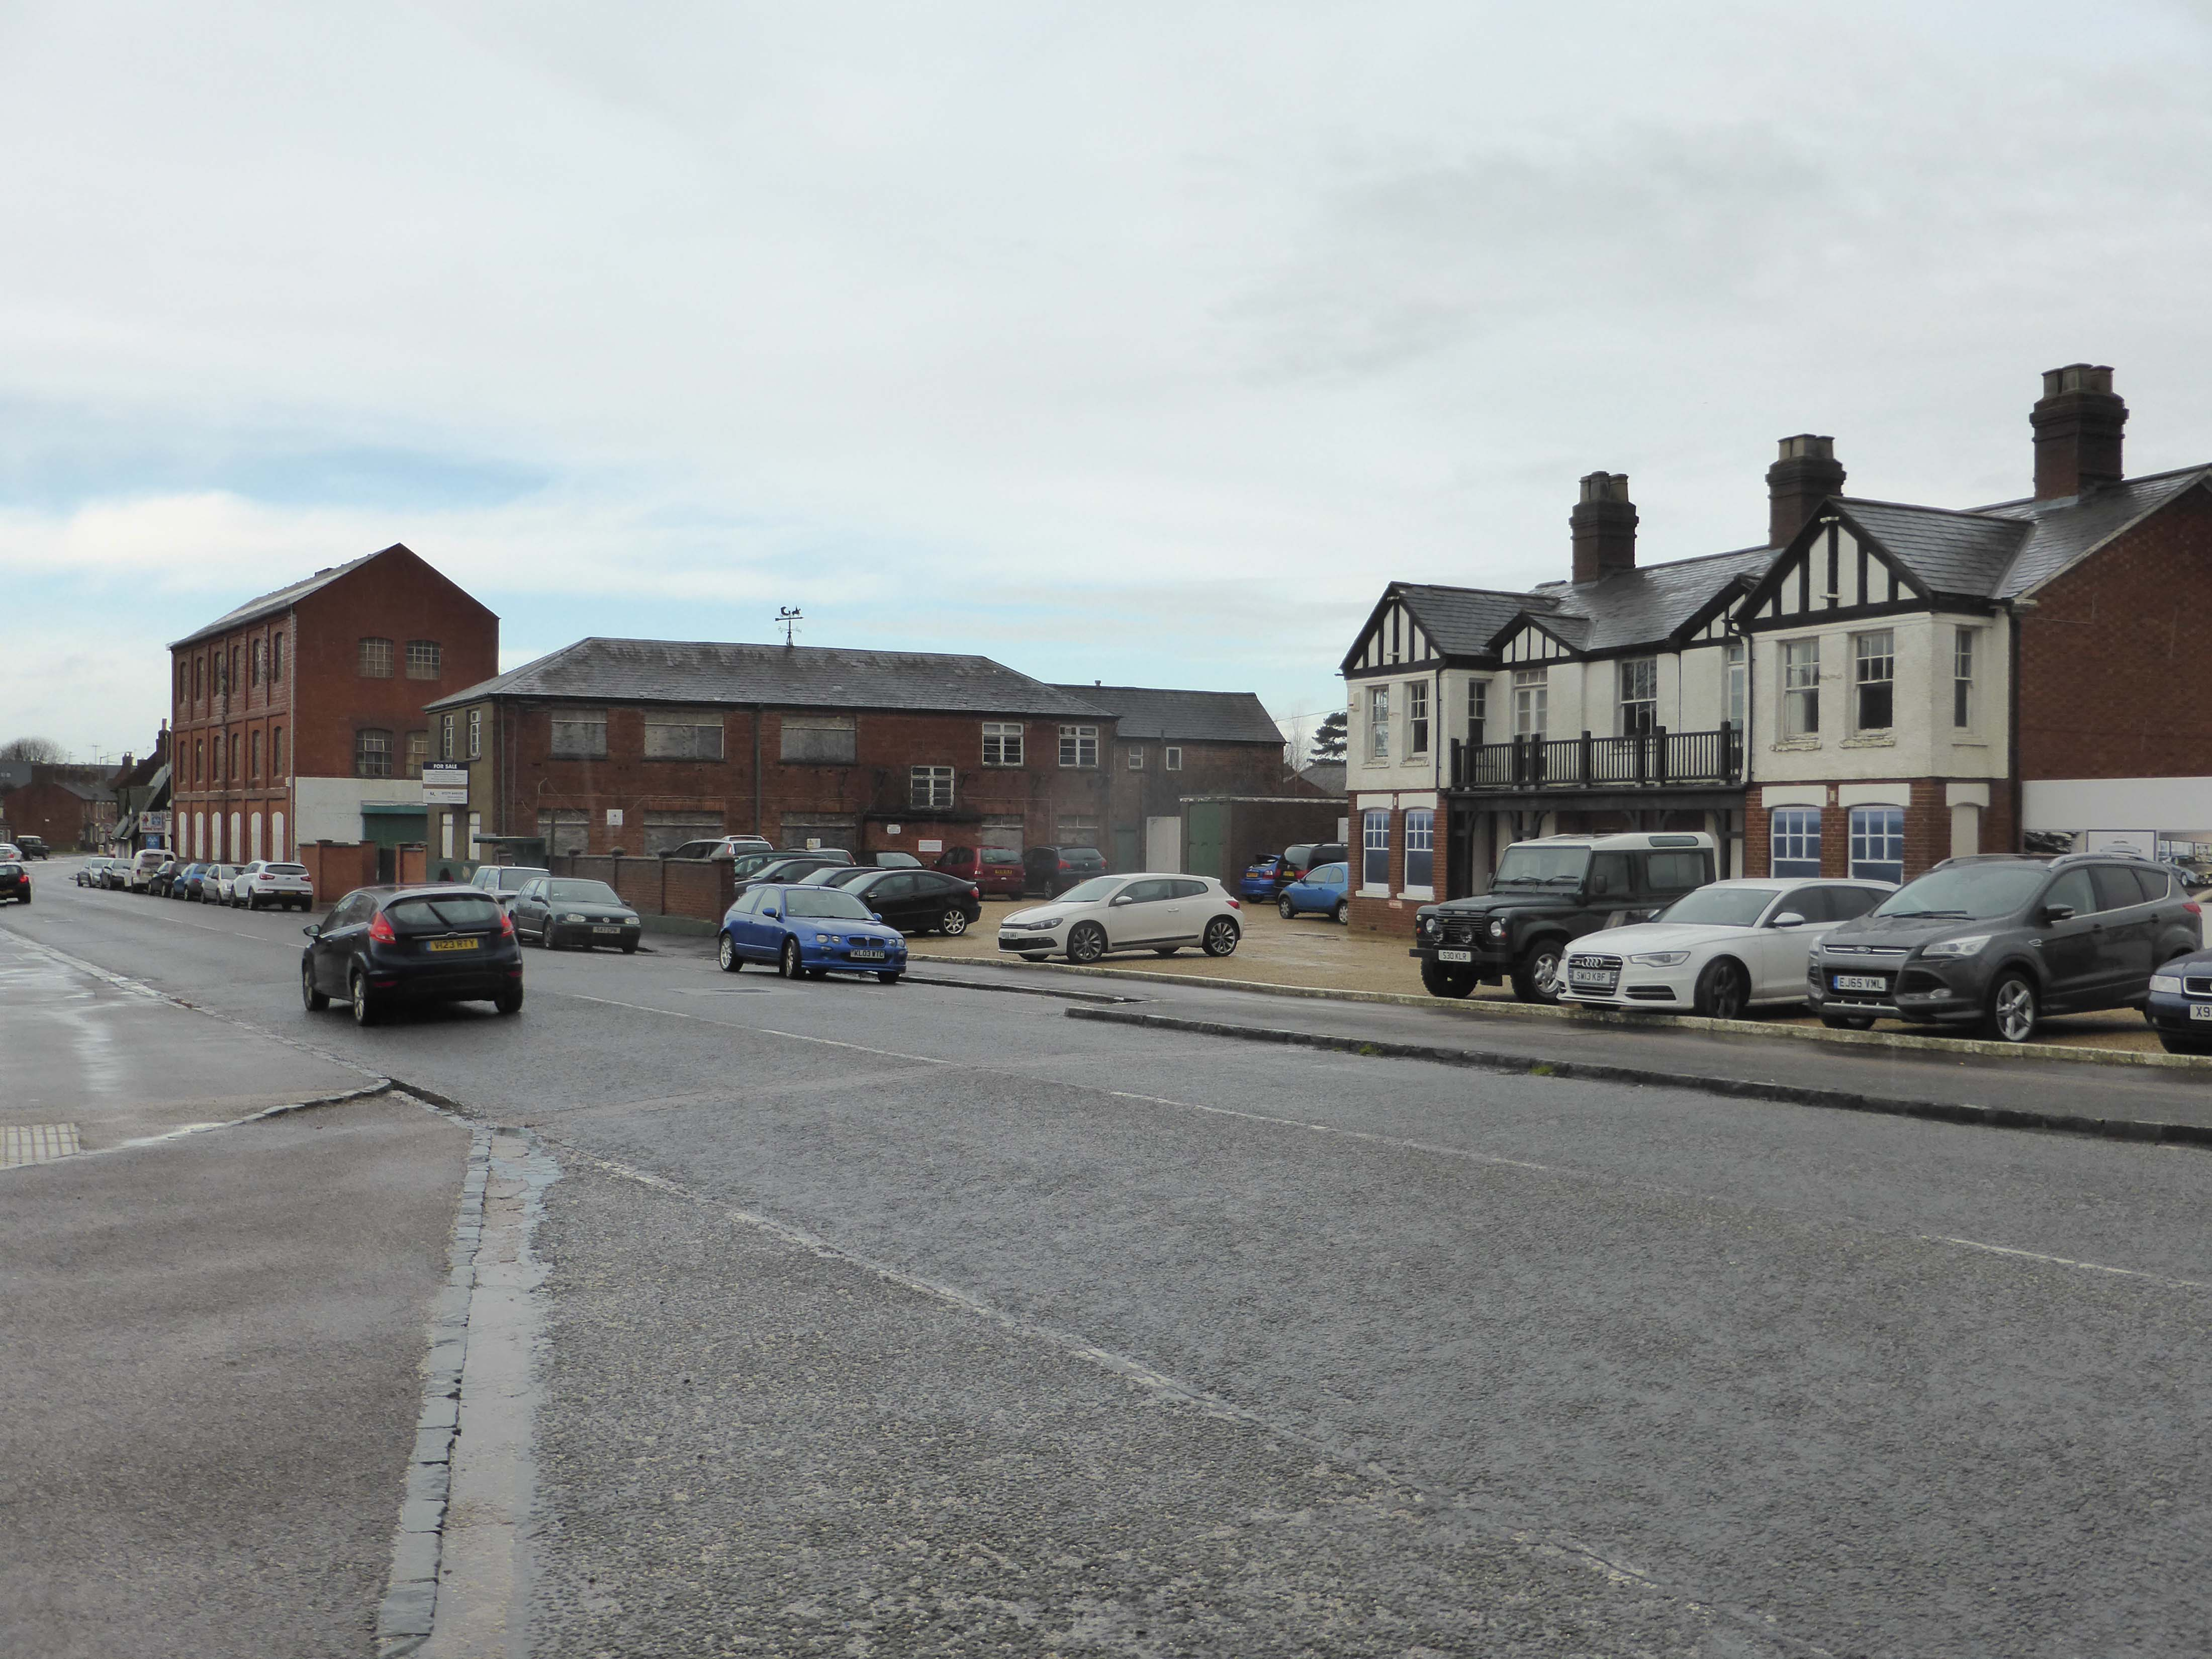 Old Aston Martin Site In Newport Pagnell To Be Considered For Housing Development Paul Alexander